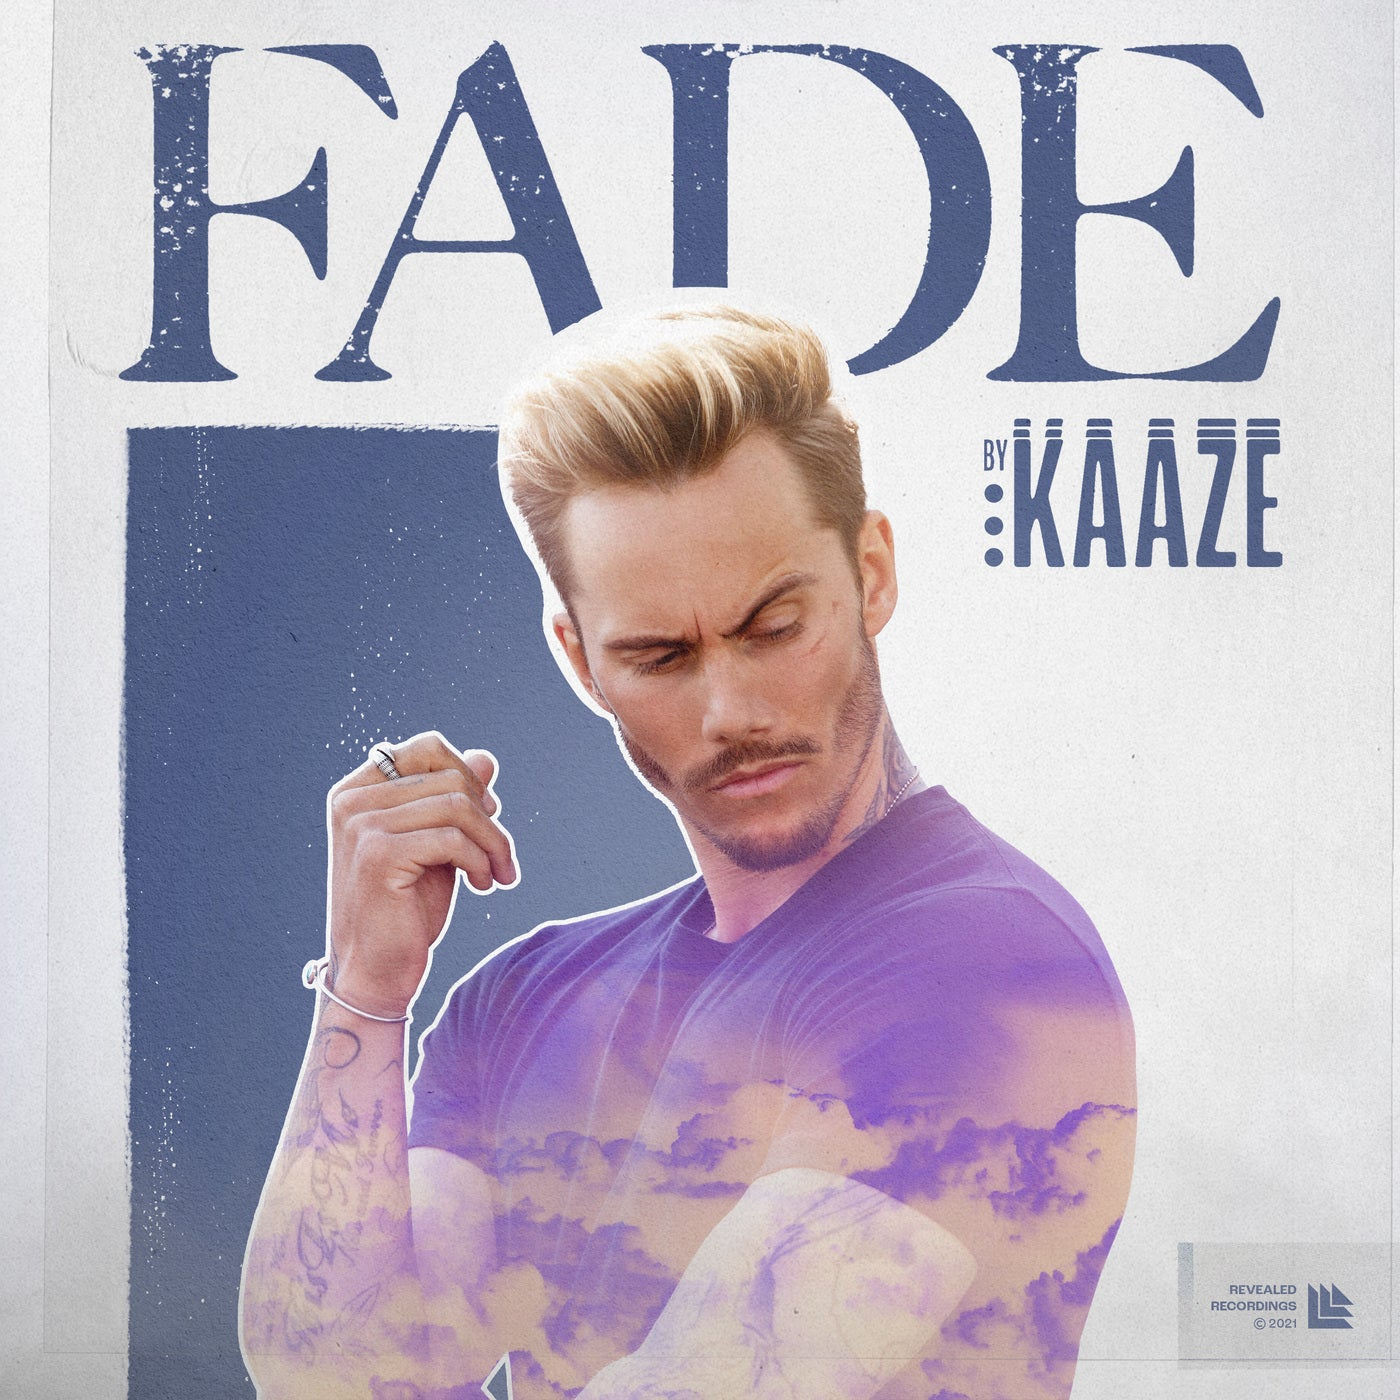 FADE (Extended Mix)